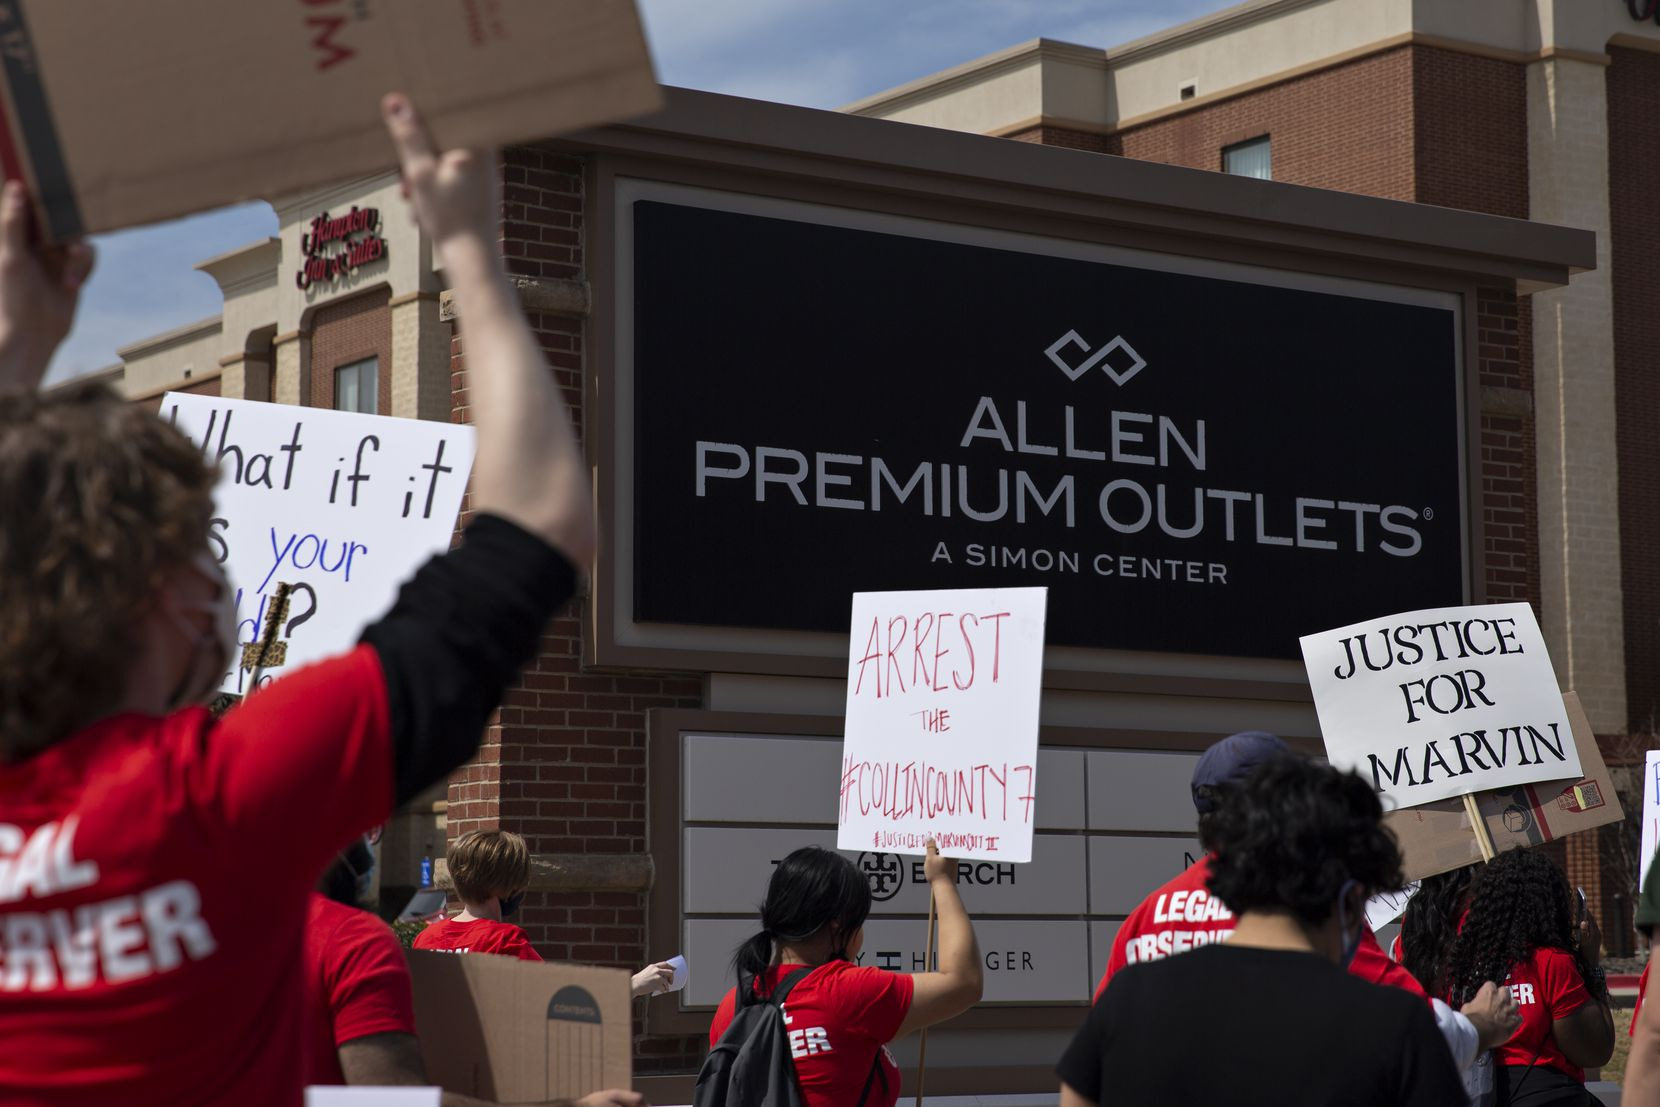 People march to the Allen Outlets on Sunday, March 21, 2021 demanding justice for Marvin Scott III, who died a week prior while in custody at the Collin County Jail on March 14, 2021. Marvin Scott III was arrested at the Allen Outlets for possession of less than two ounces of marijuana.  (Shelby Tauber/Special Contributor)